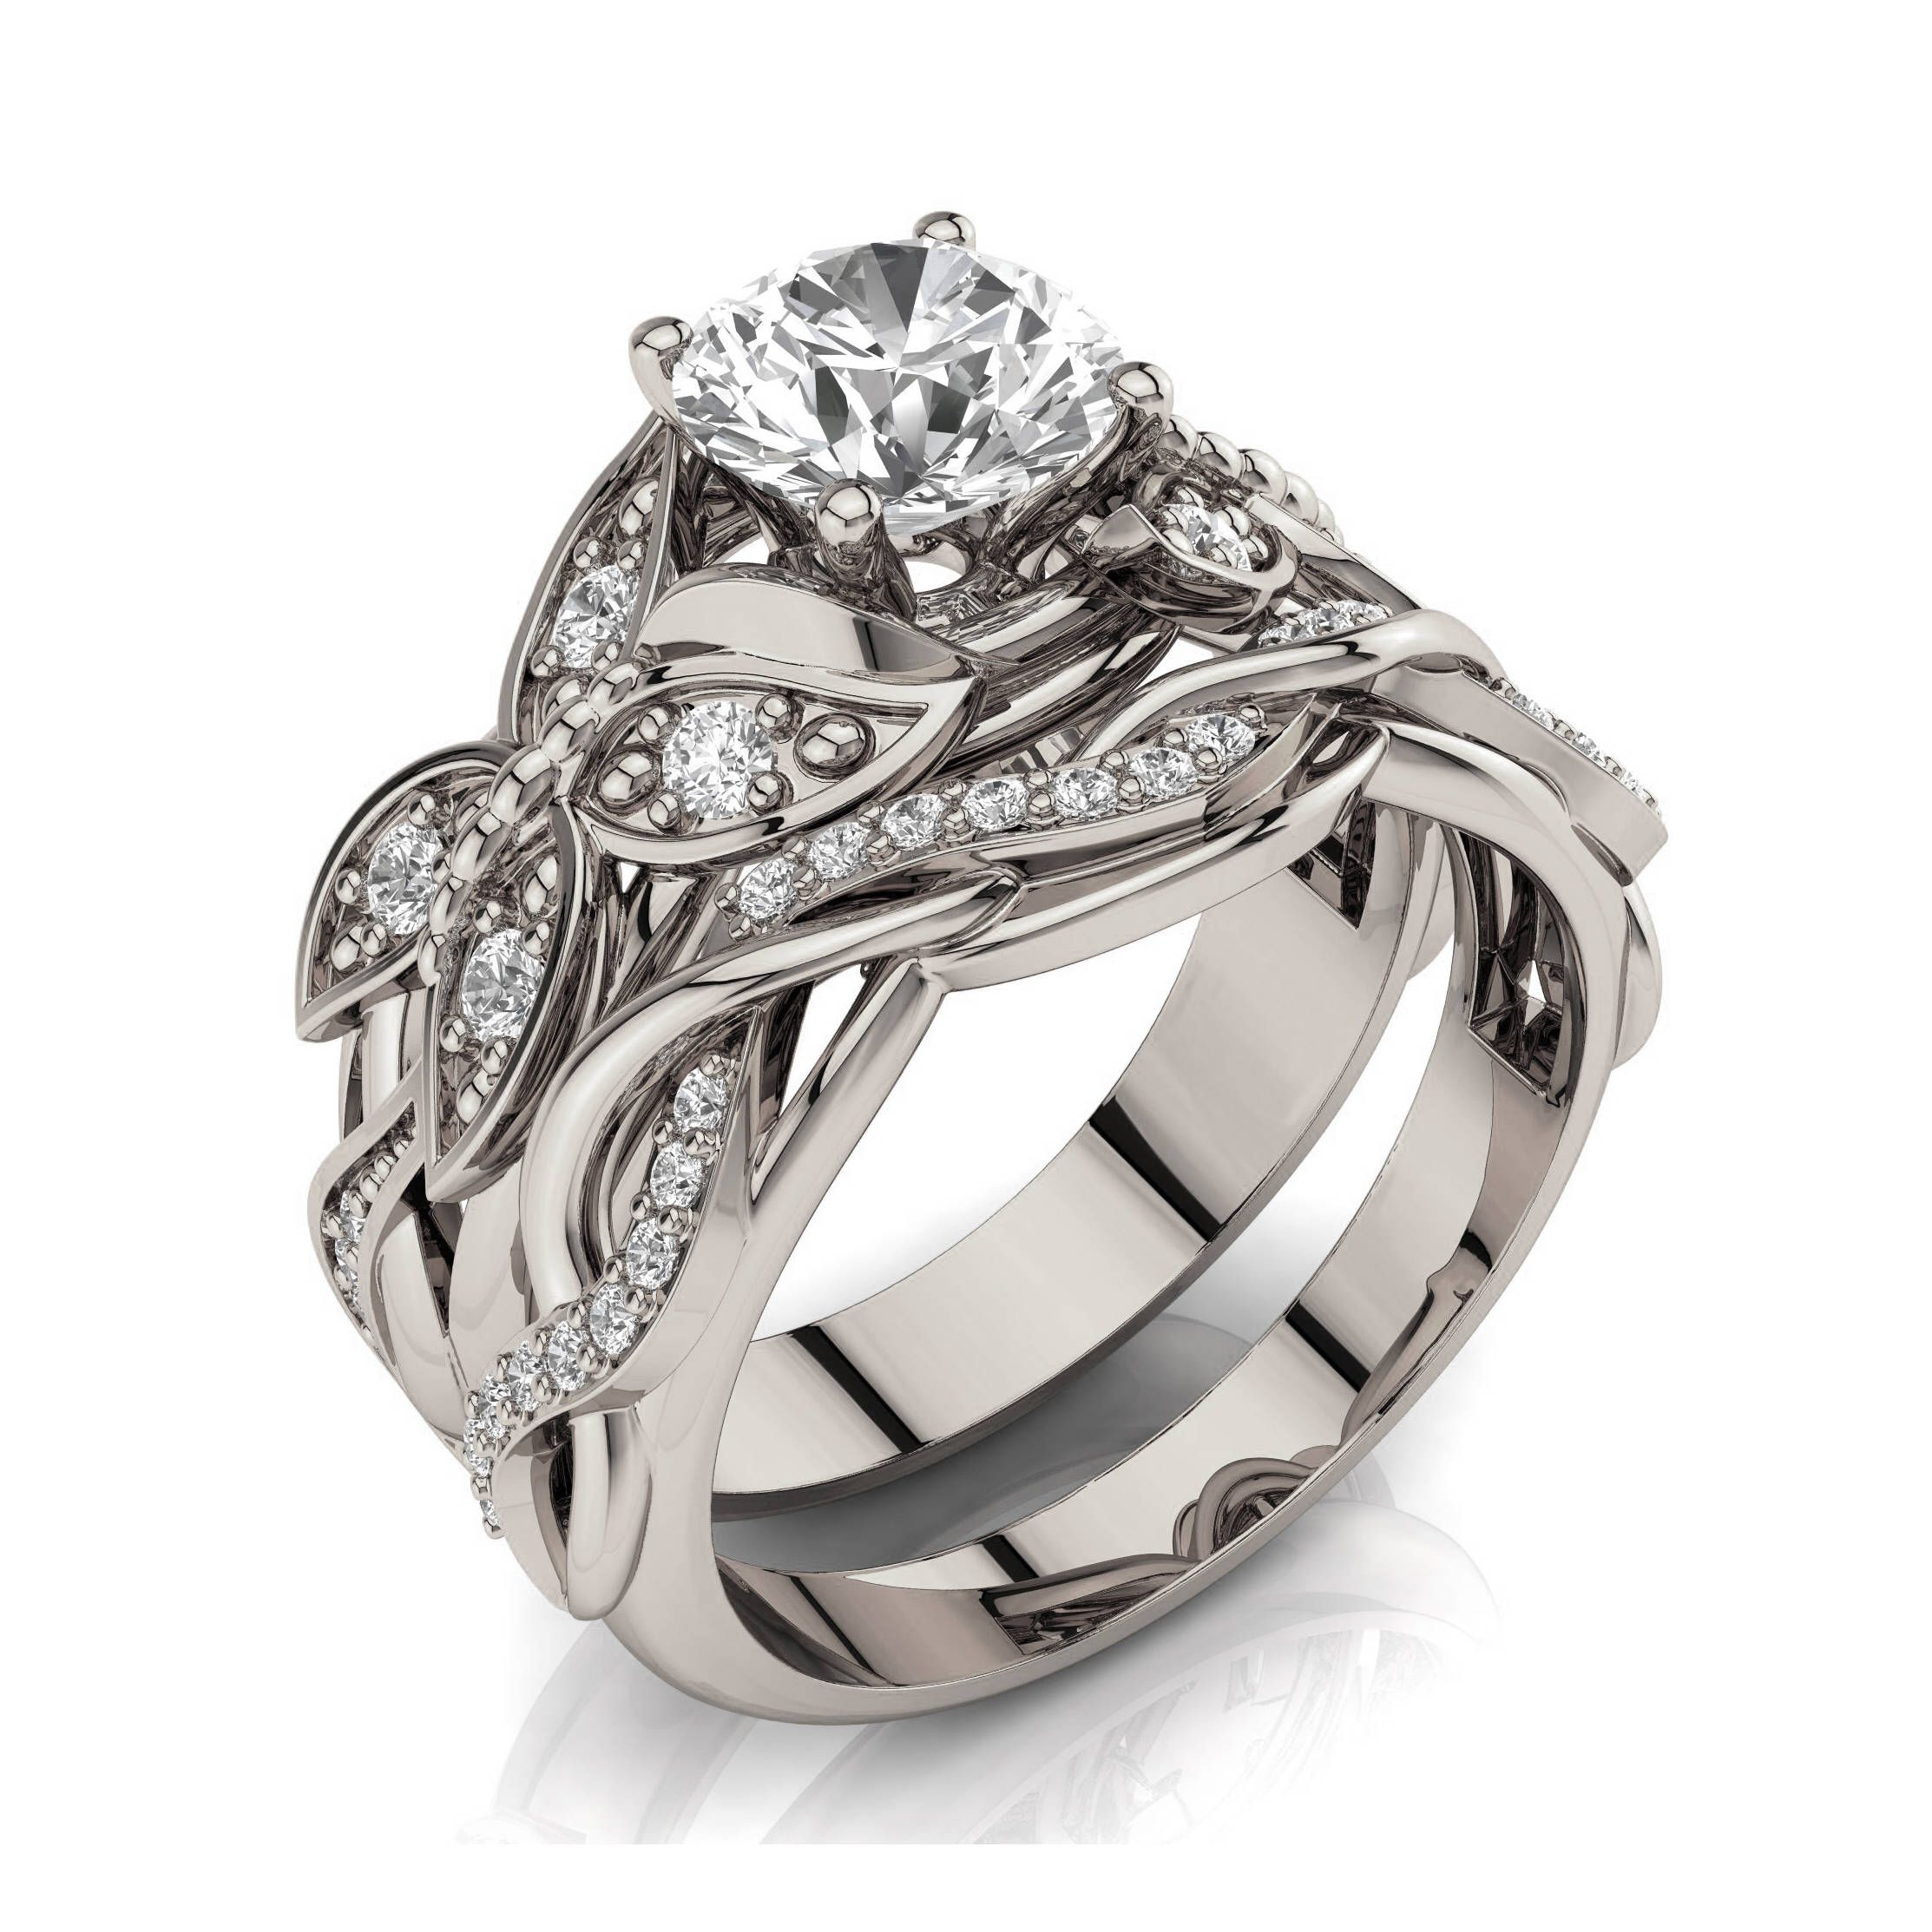 Butterfly Bridal Set, 1ct Moissanite engagement ring